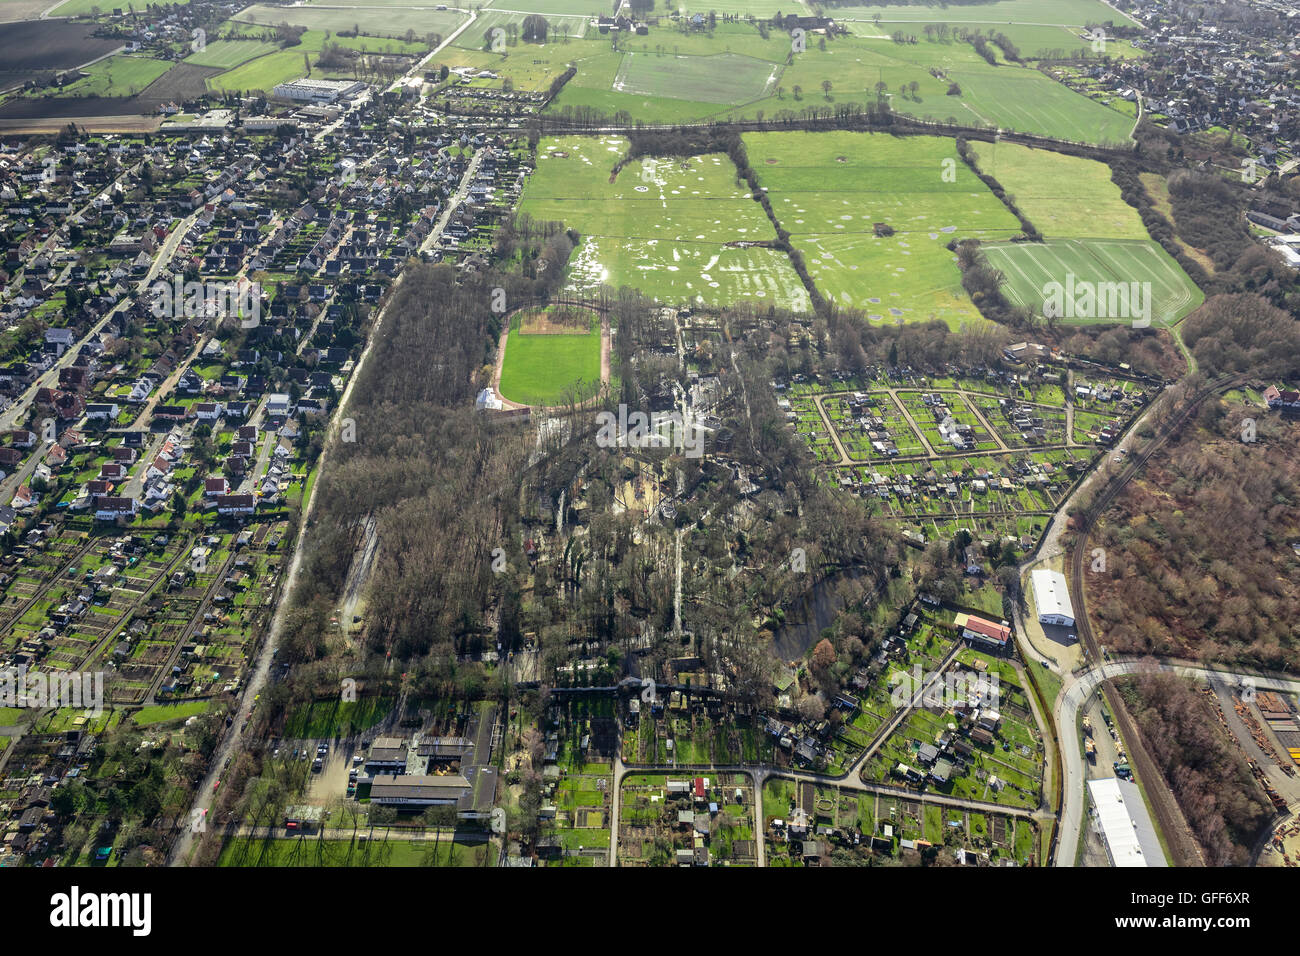 Air, Animal park Hamm, winter pictures, Hamm, Ruhr area, North Rhine Westphalia, Germany, Europe, Aerial view, birds - Stock Image